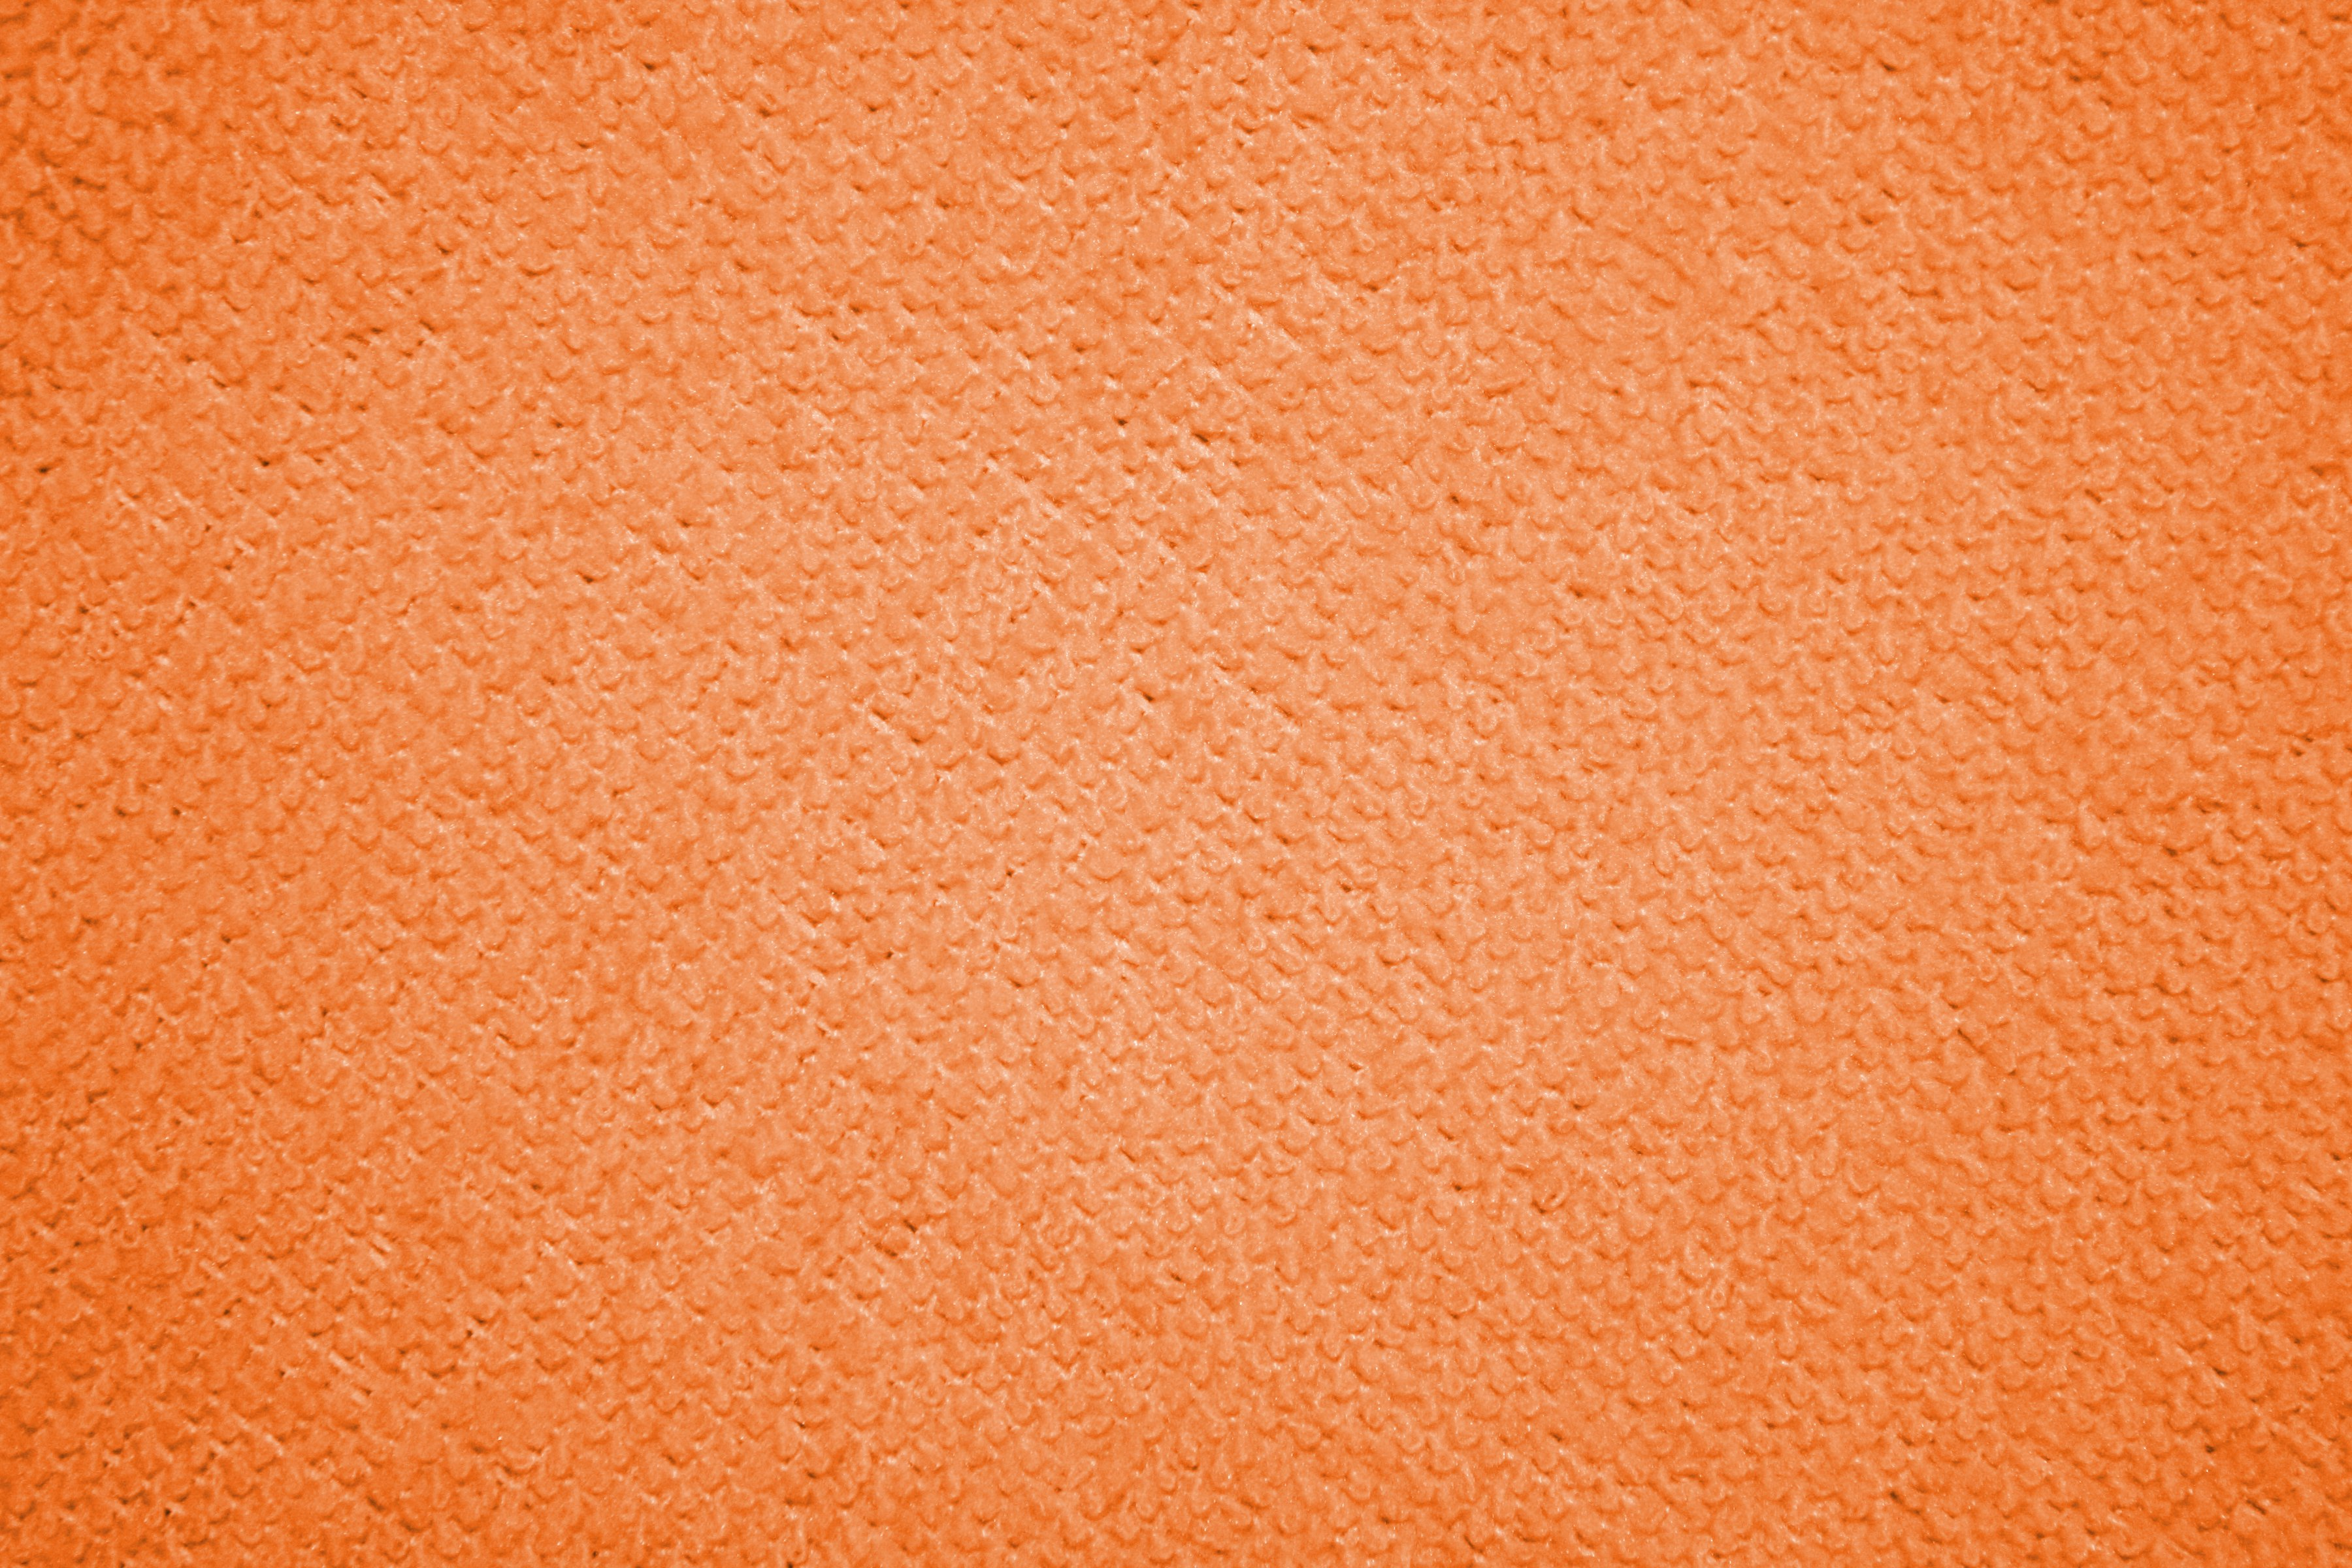 Orange microfiber cloth fabric texture picture free for Cloth fabric